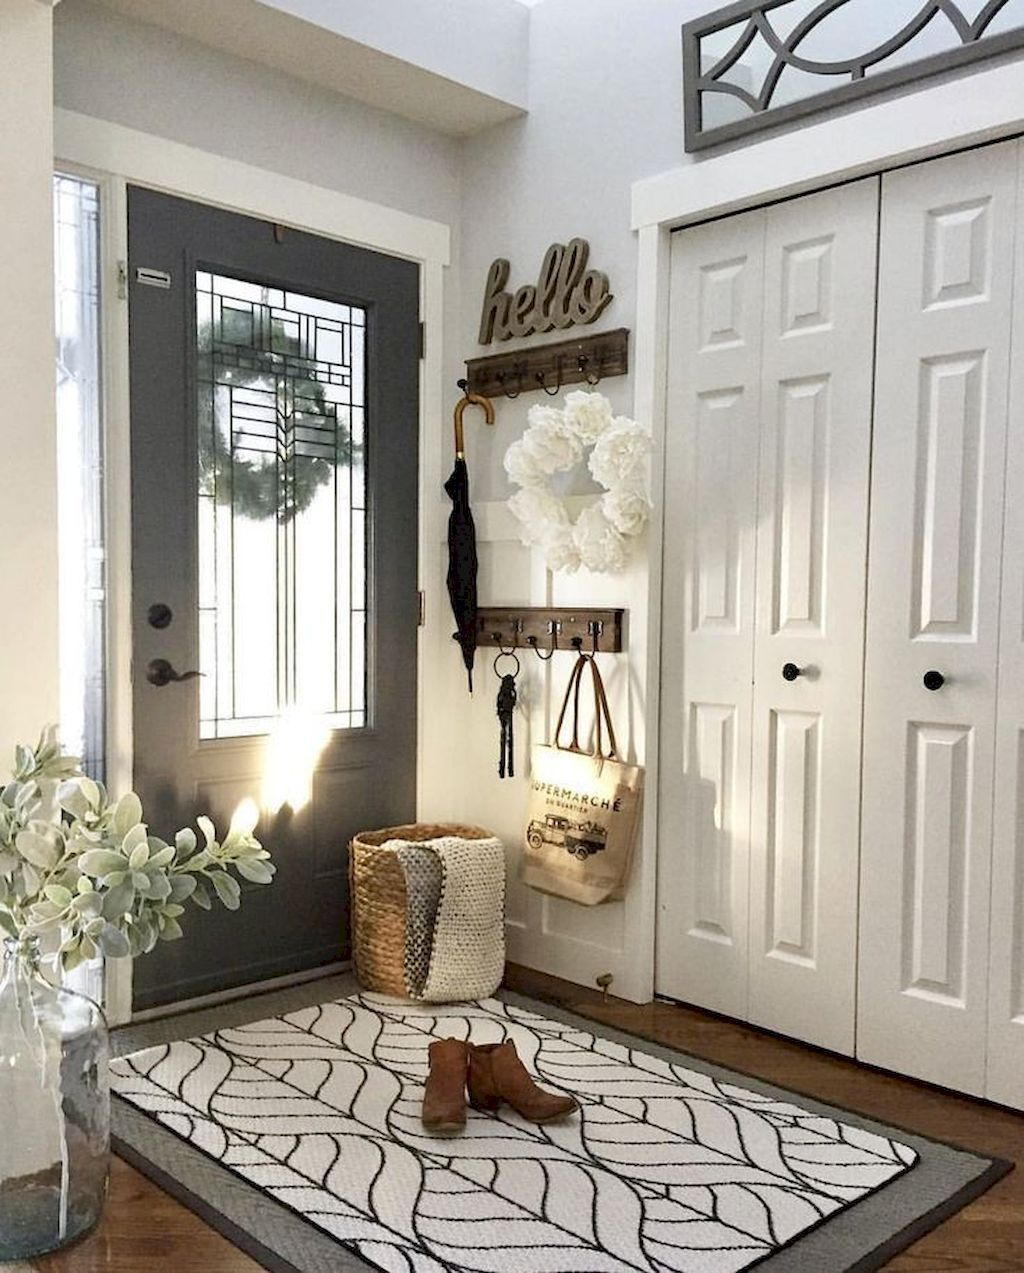 The 70 000 Dream Kitchen Makeover: 53 Stunning Rustic Entryway Decorating Ideas